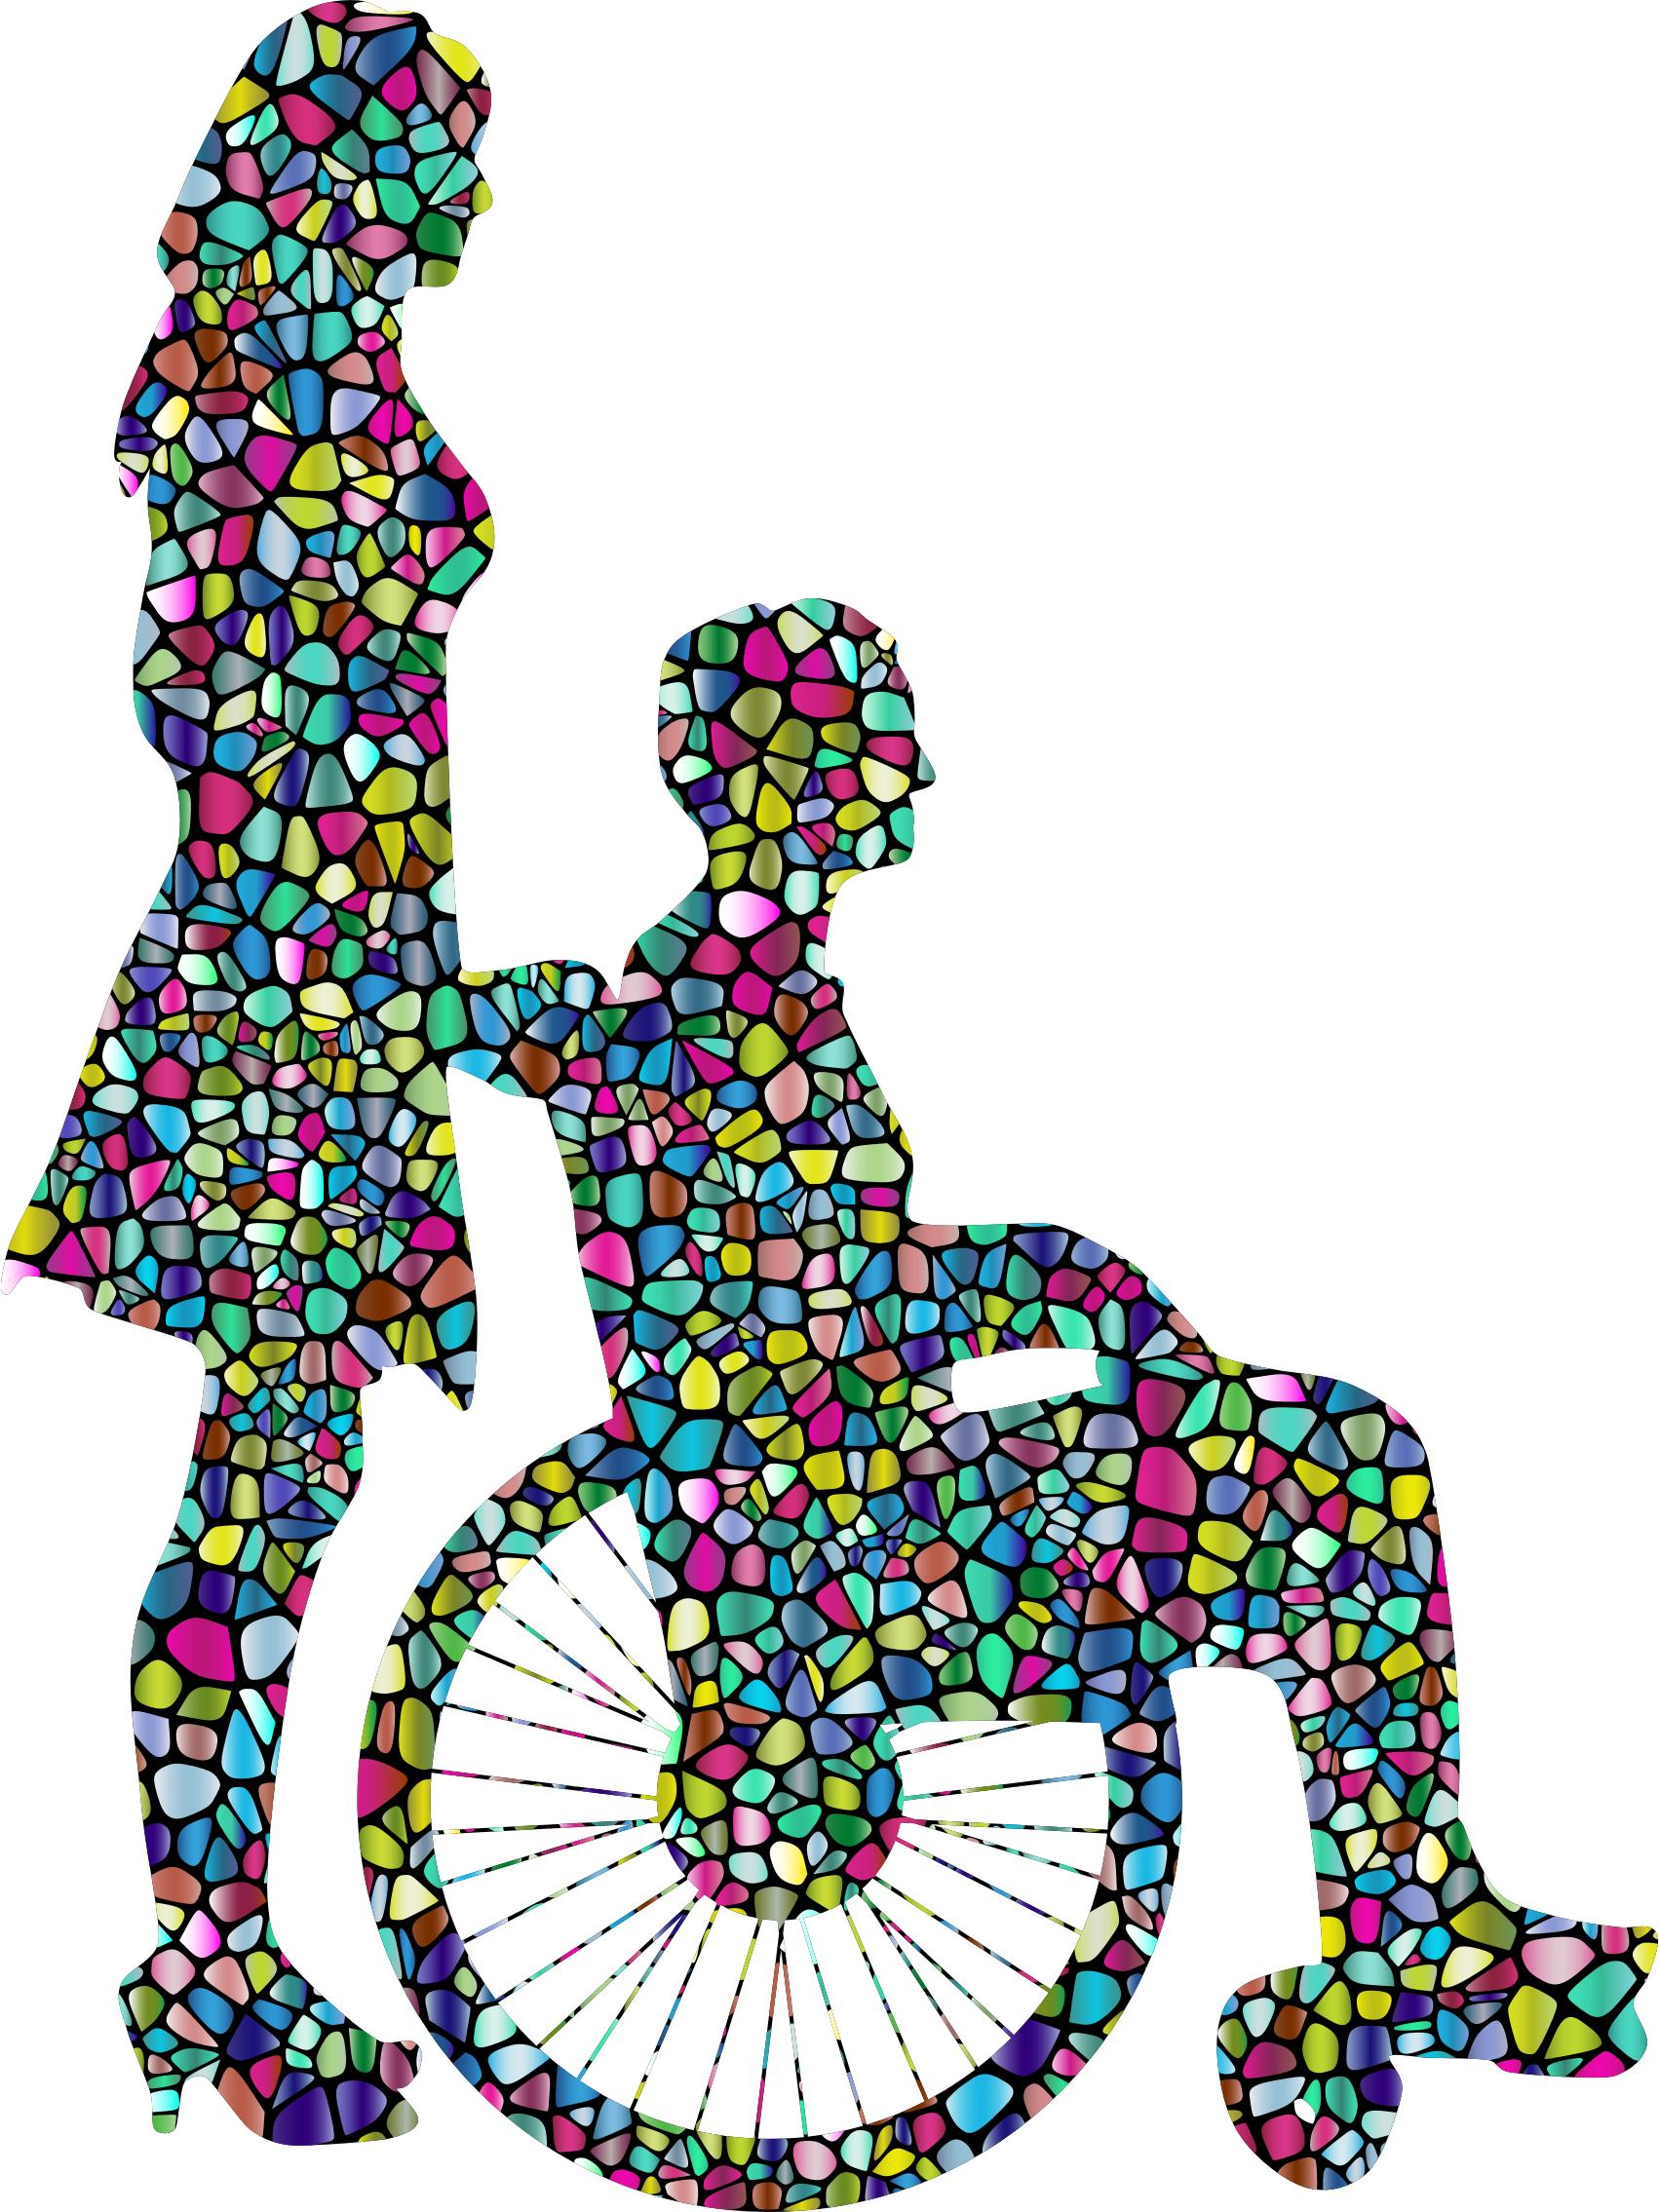 1702x2270 Polyprismatic Tiled Woman Pushing Man In Wheelchair Silhouette